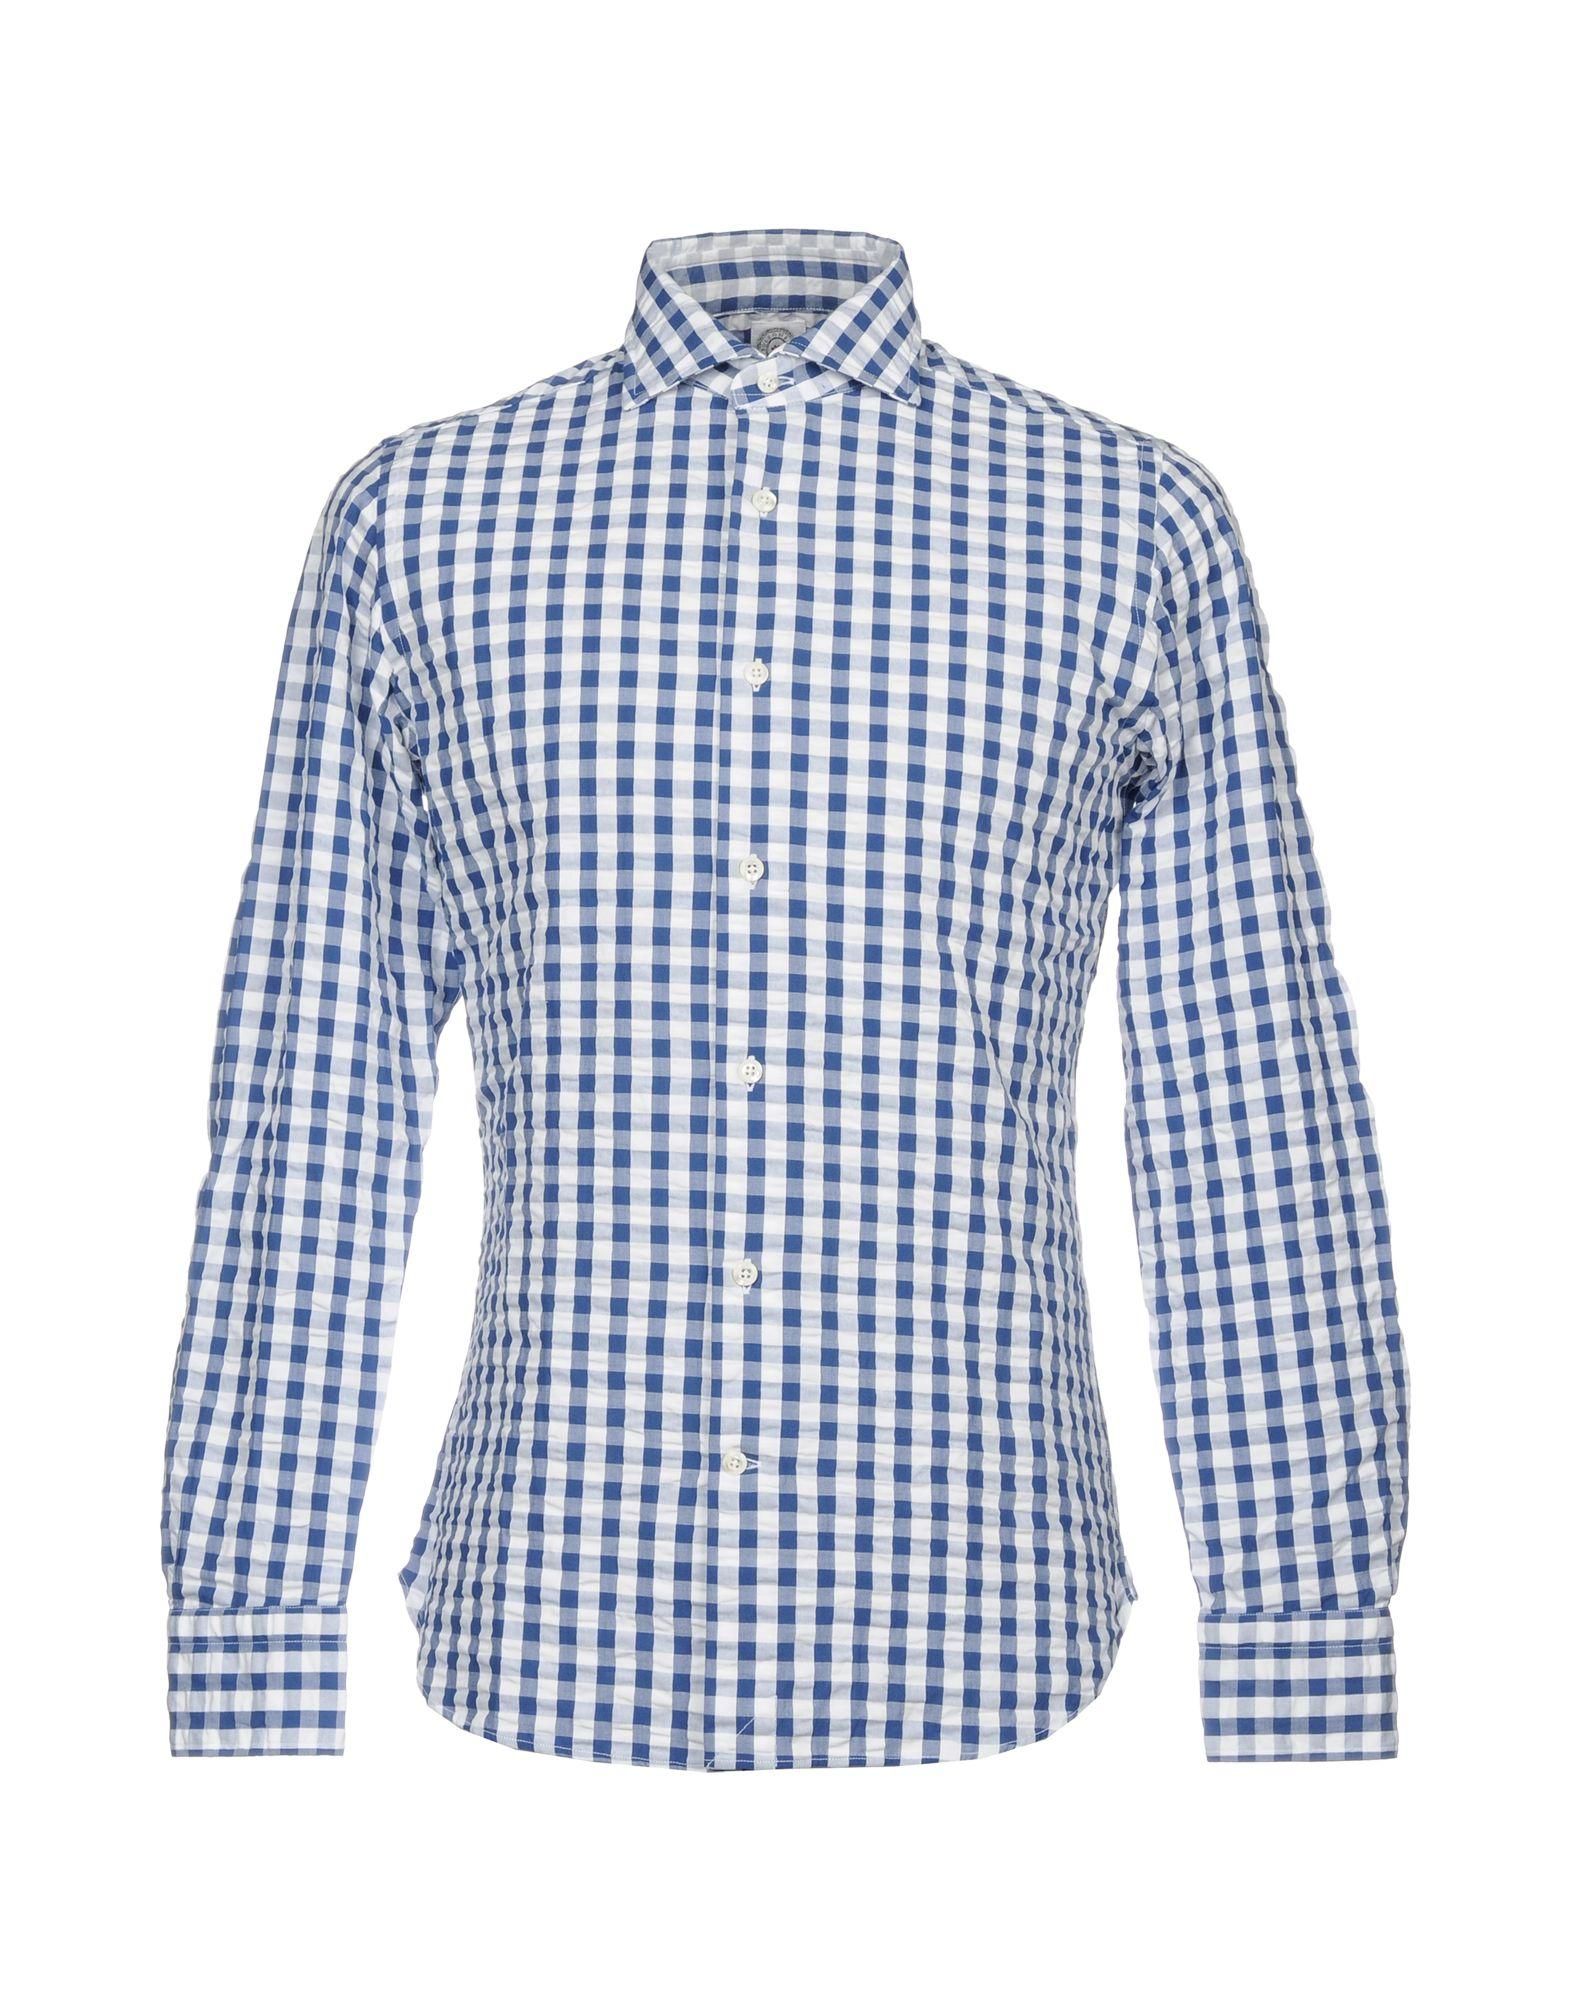 Bolzonella 1934 Shirts In Blue